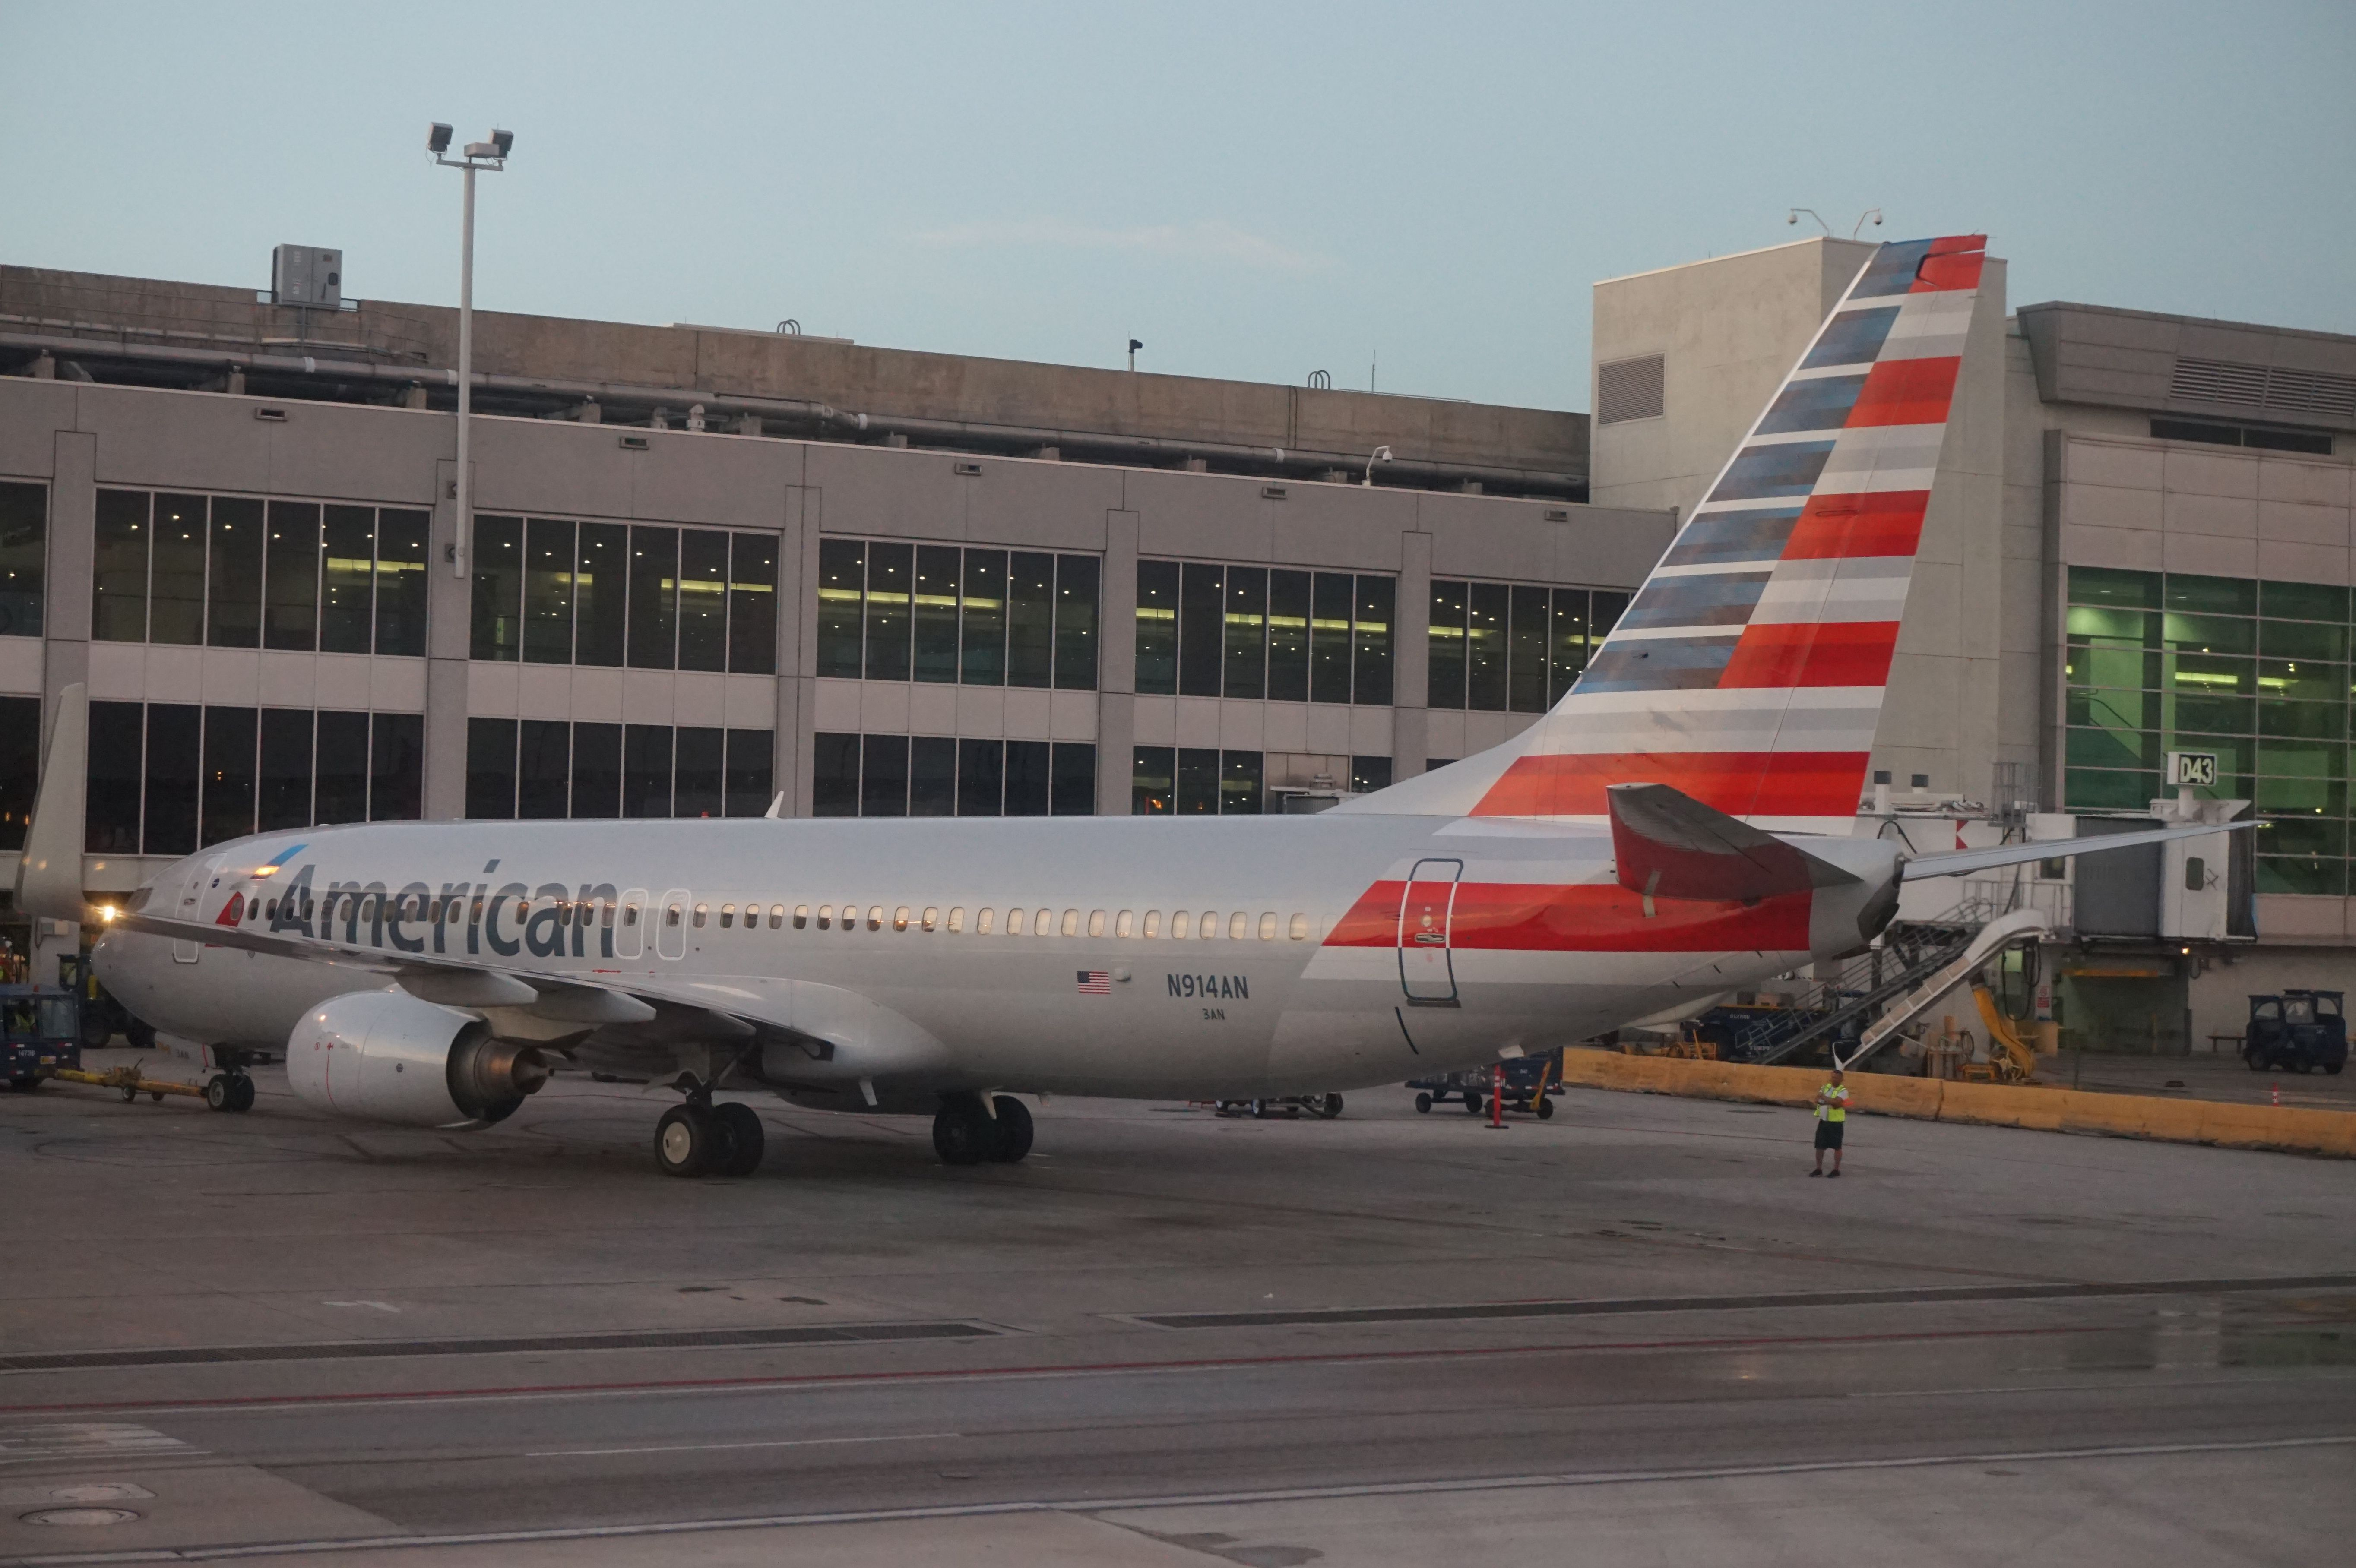 American Airlines B737 at Miami International Airport